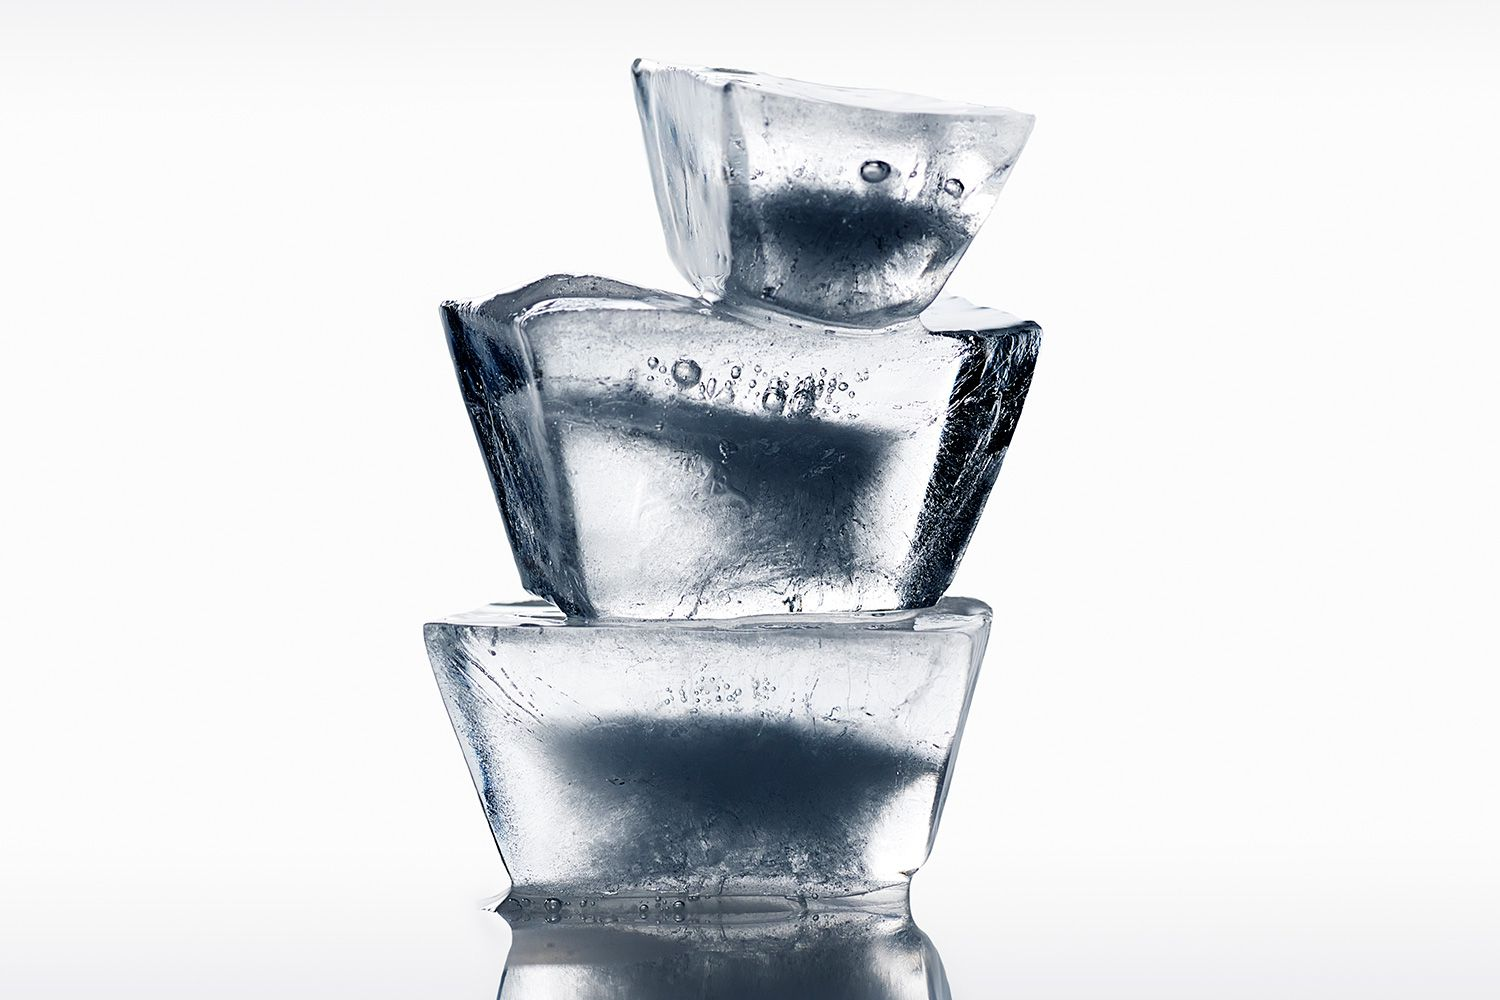 What Is the Freezing Point of Water?